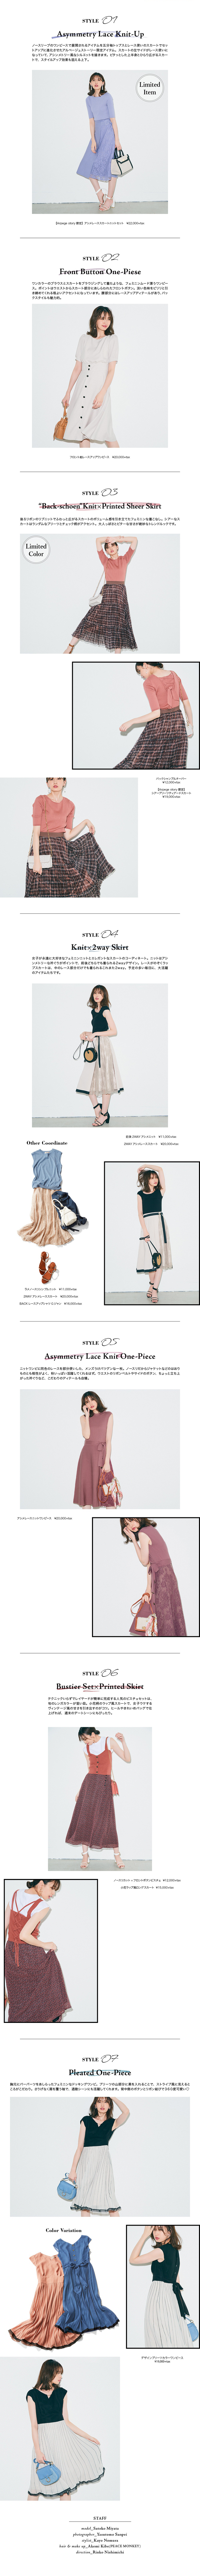 WEB ALBUM vol.41 - Apuweiser-riche × 宮田聡子